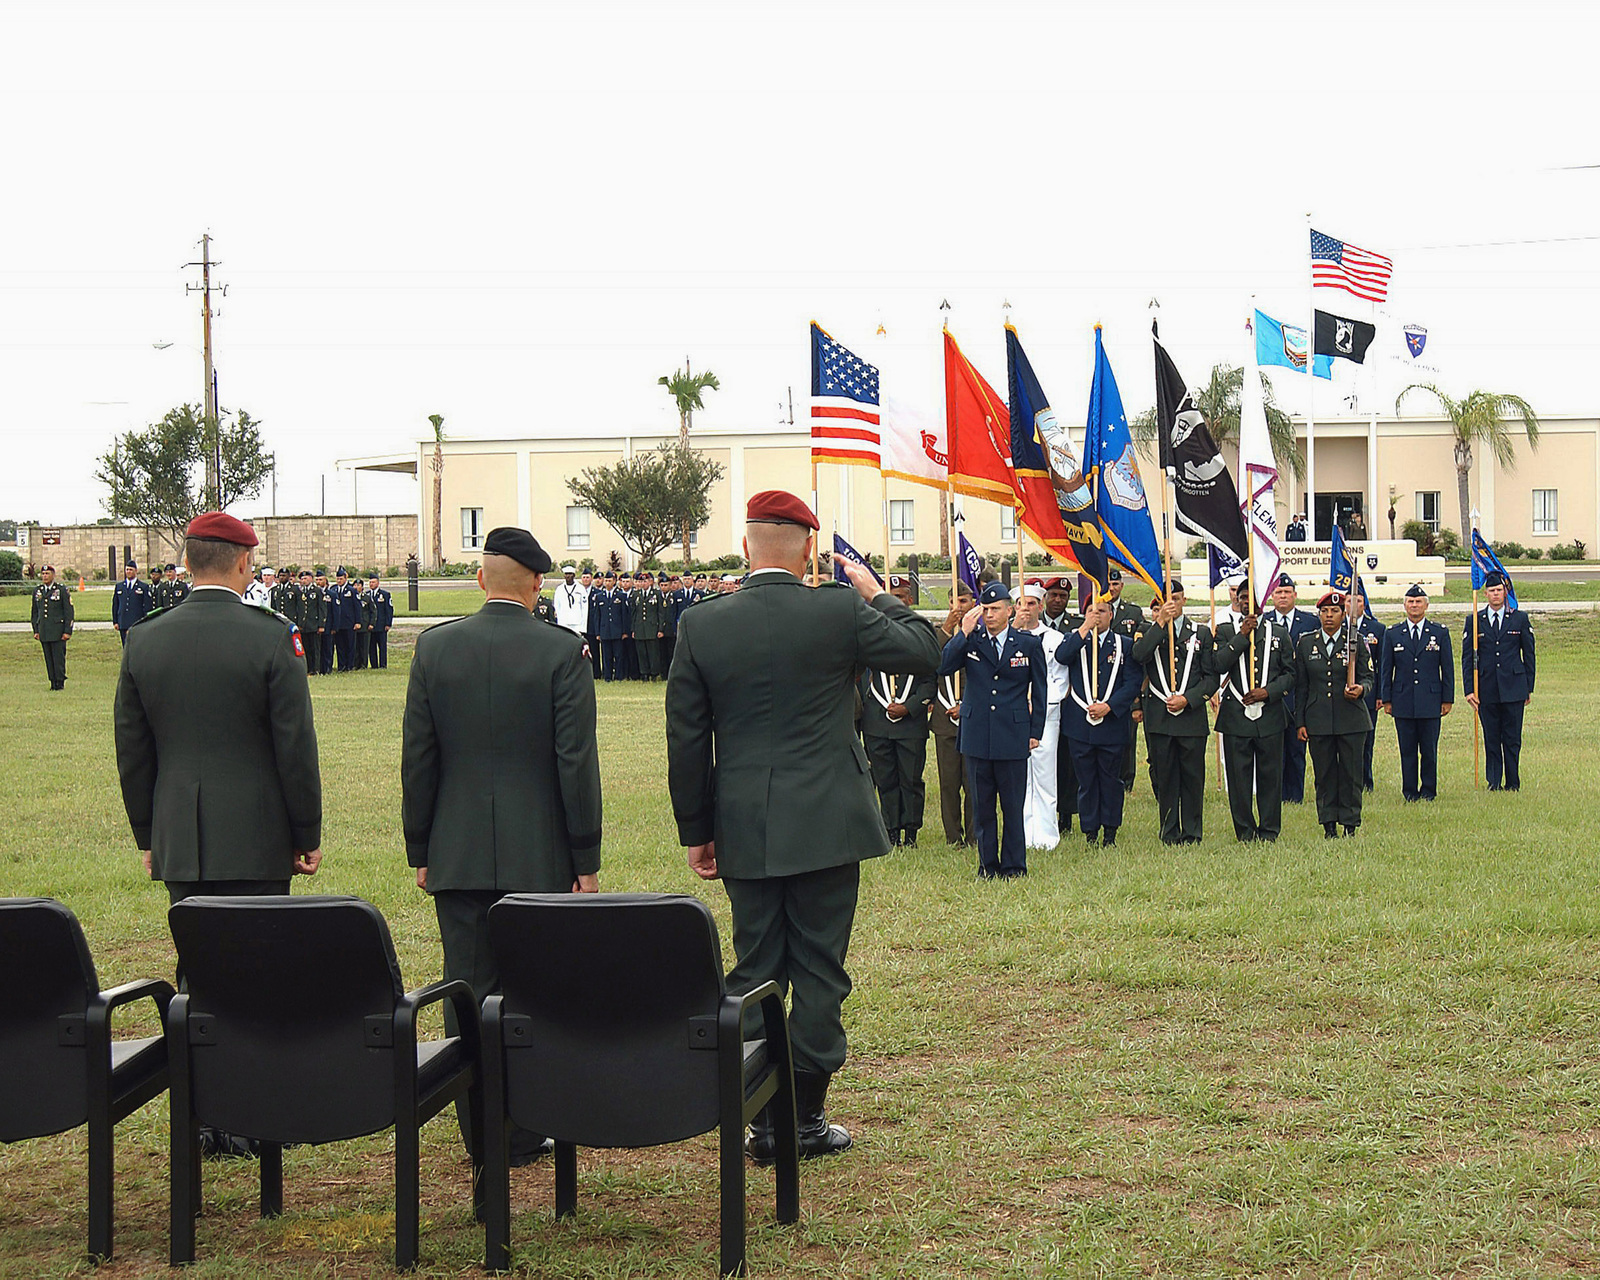 US Army (USA) Colonel (COL) James A. Lien (right), outgoing Commander, Joint Communications Support Element (JCSE), drops his salute to US Air Force (USAF) Lieutenant Colonel (LTC) Kenneth A. Gaines (USAF officer saluting in background), Deputy Commander, JCSE, during the JCSE Change of Command ceremony at MacDill Air Force Base (AFB), Florida (FL). Standing at attention observing this exchange of salutes are USA COL Thomas G. Hopkins (left), incoming Commander, JCSE, and USA Lieutenant General (LGEN) Robert W. Wagner (center), Deputy Commander, US Joint Forces Command (JFC), and change of command presiding officer